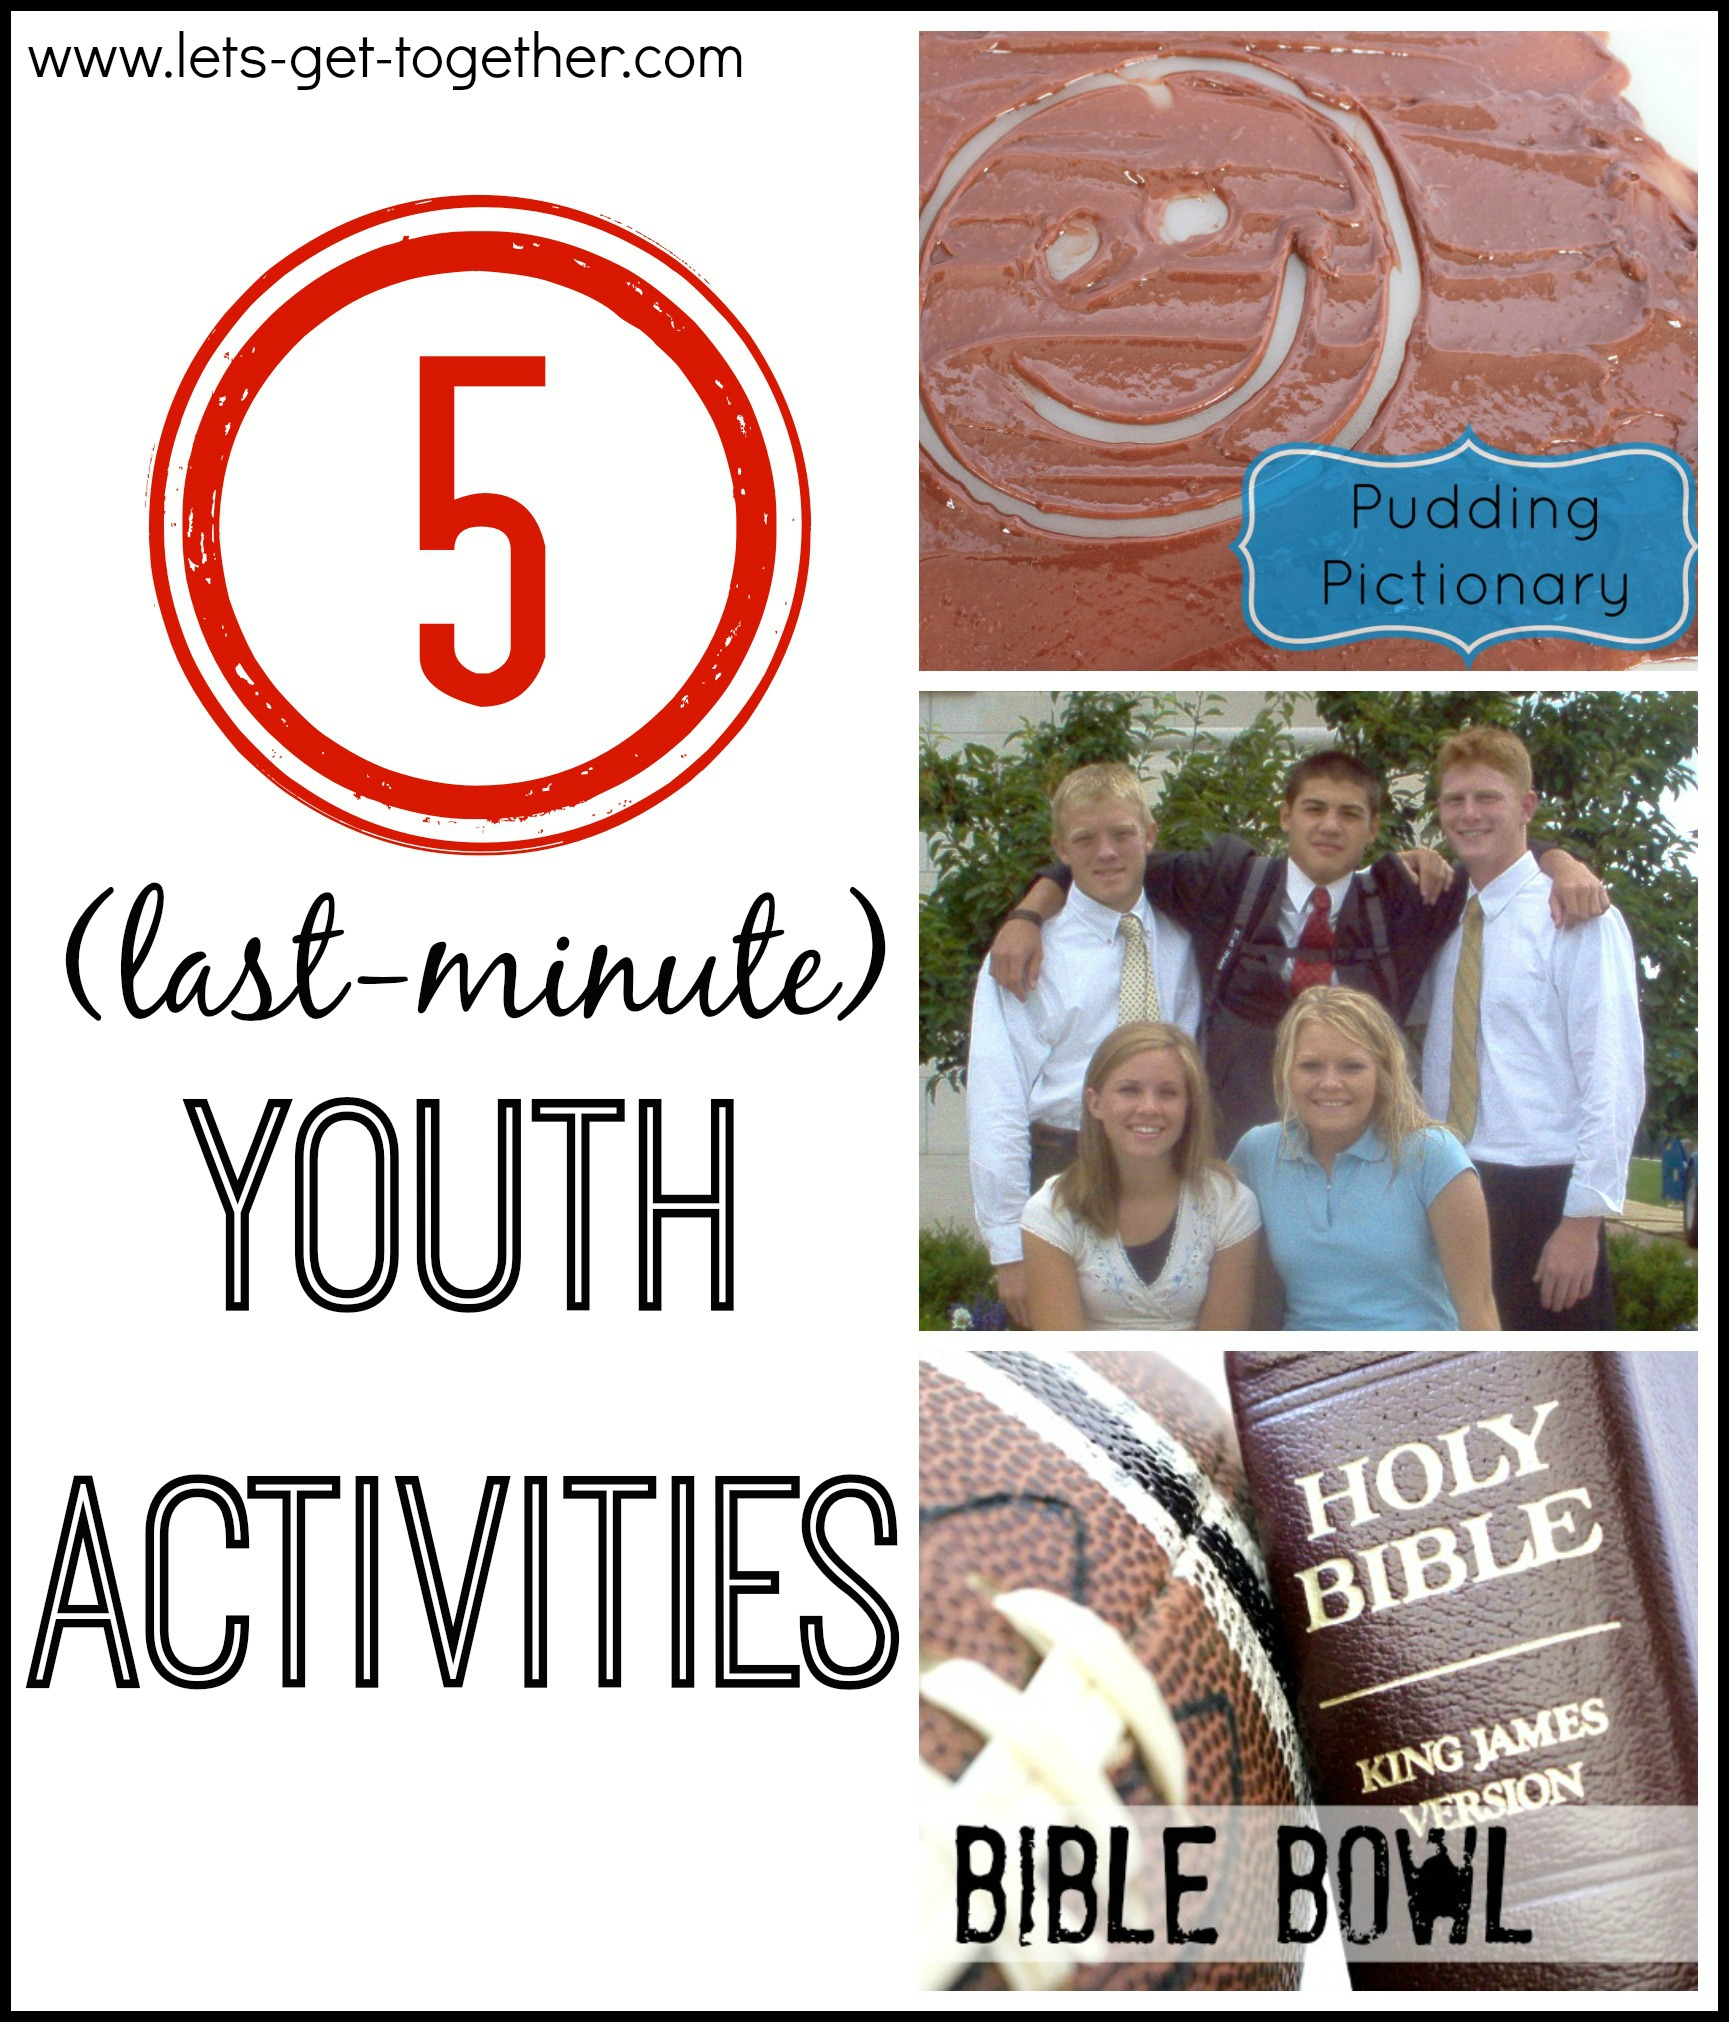 Scrapbook ideas for elderly - 5 Last Minute Youth Activities From Let S Get Together